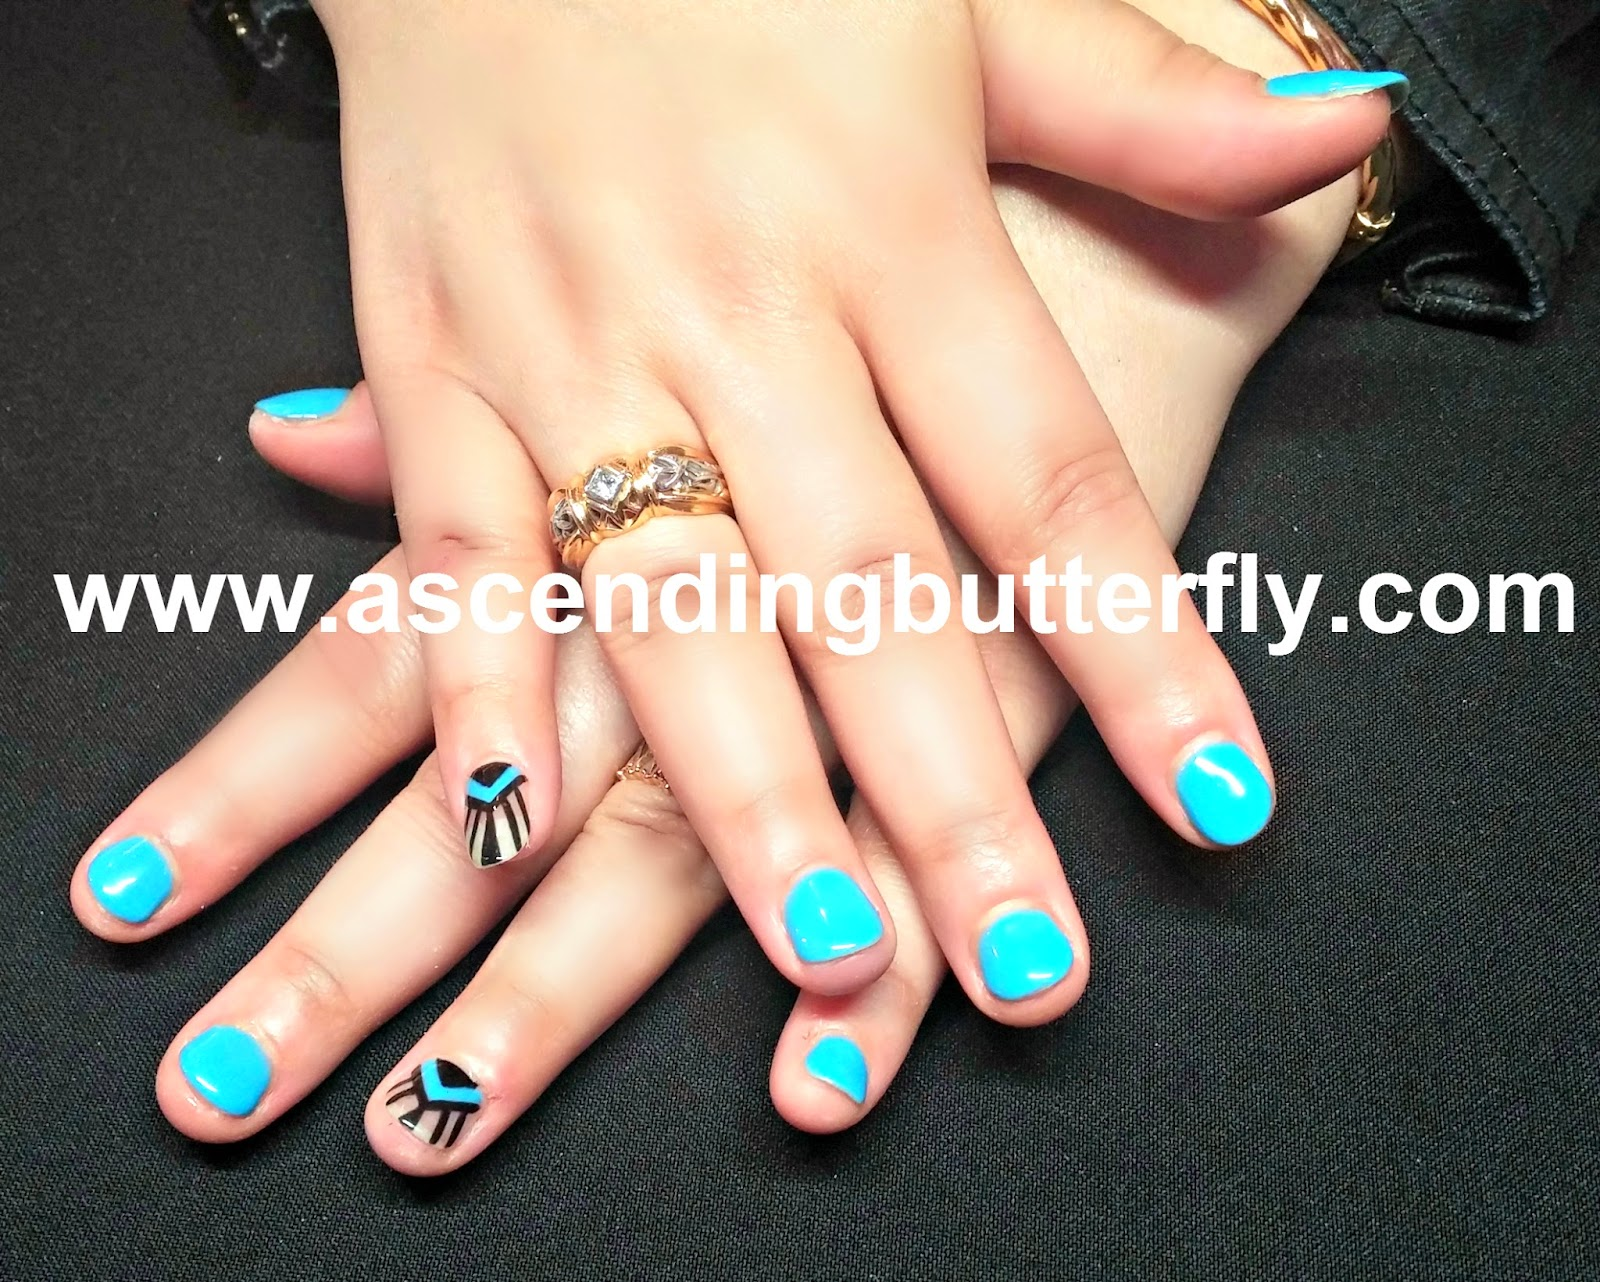 Primp and Polish, Manicures, Nail Art, Nail Salon